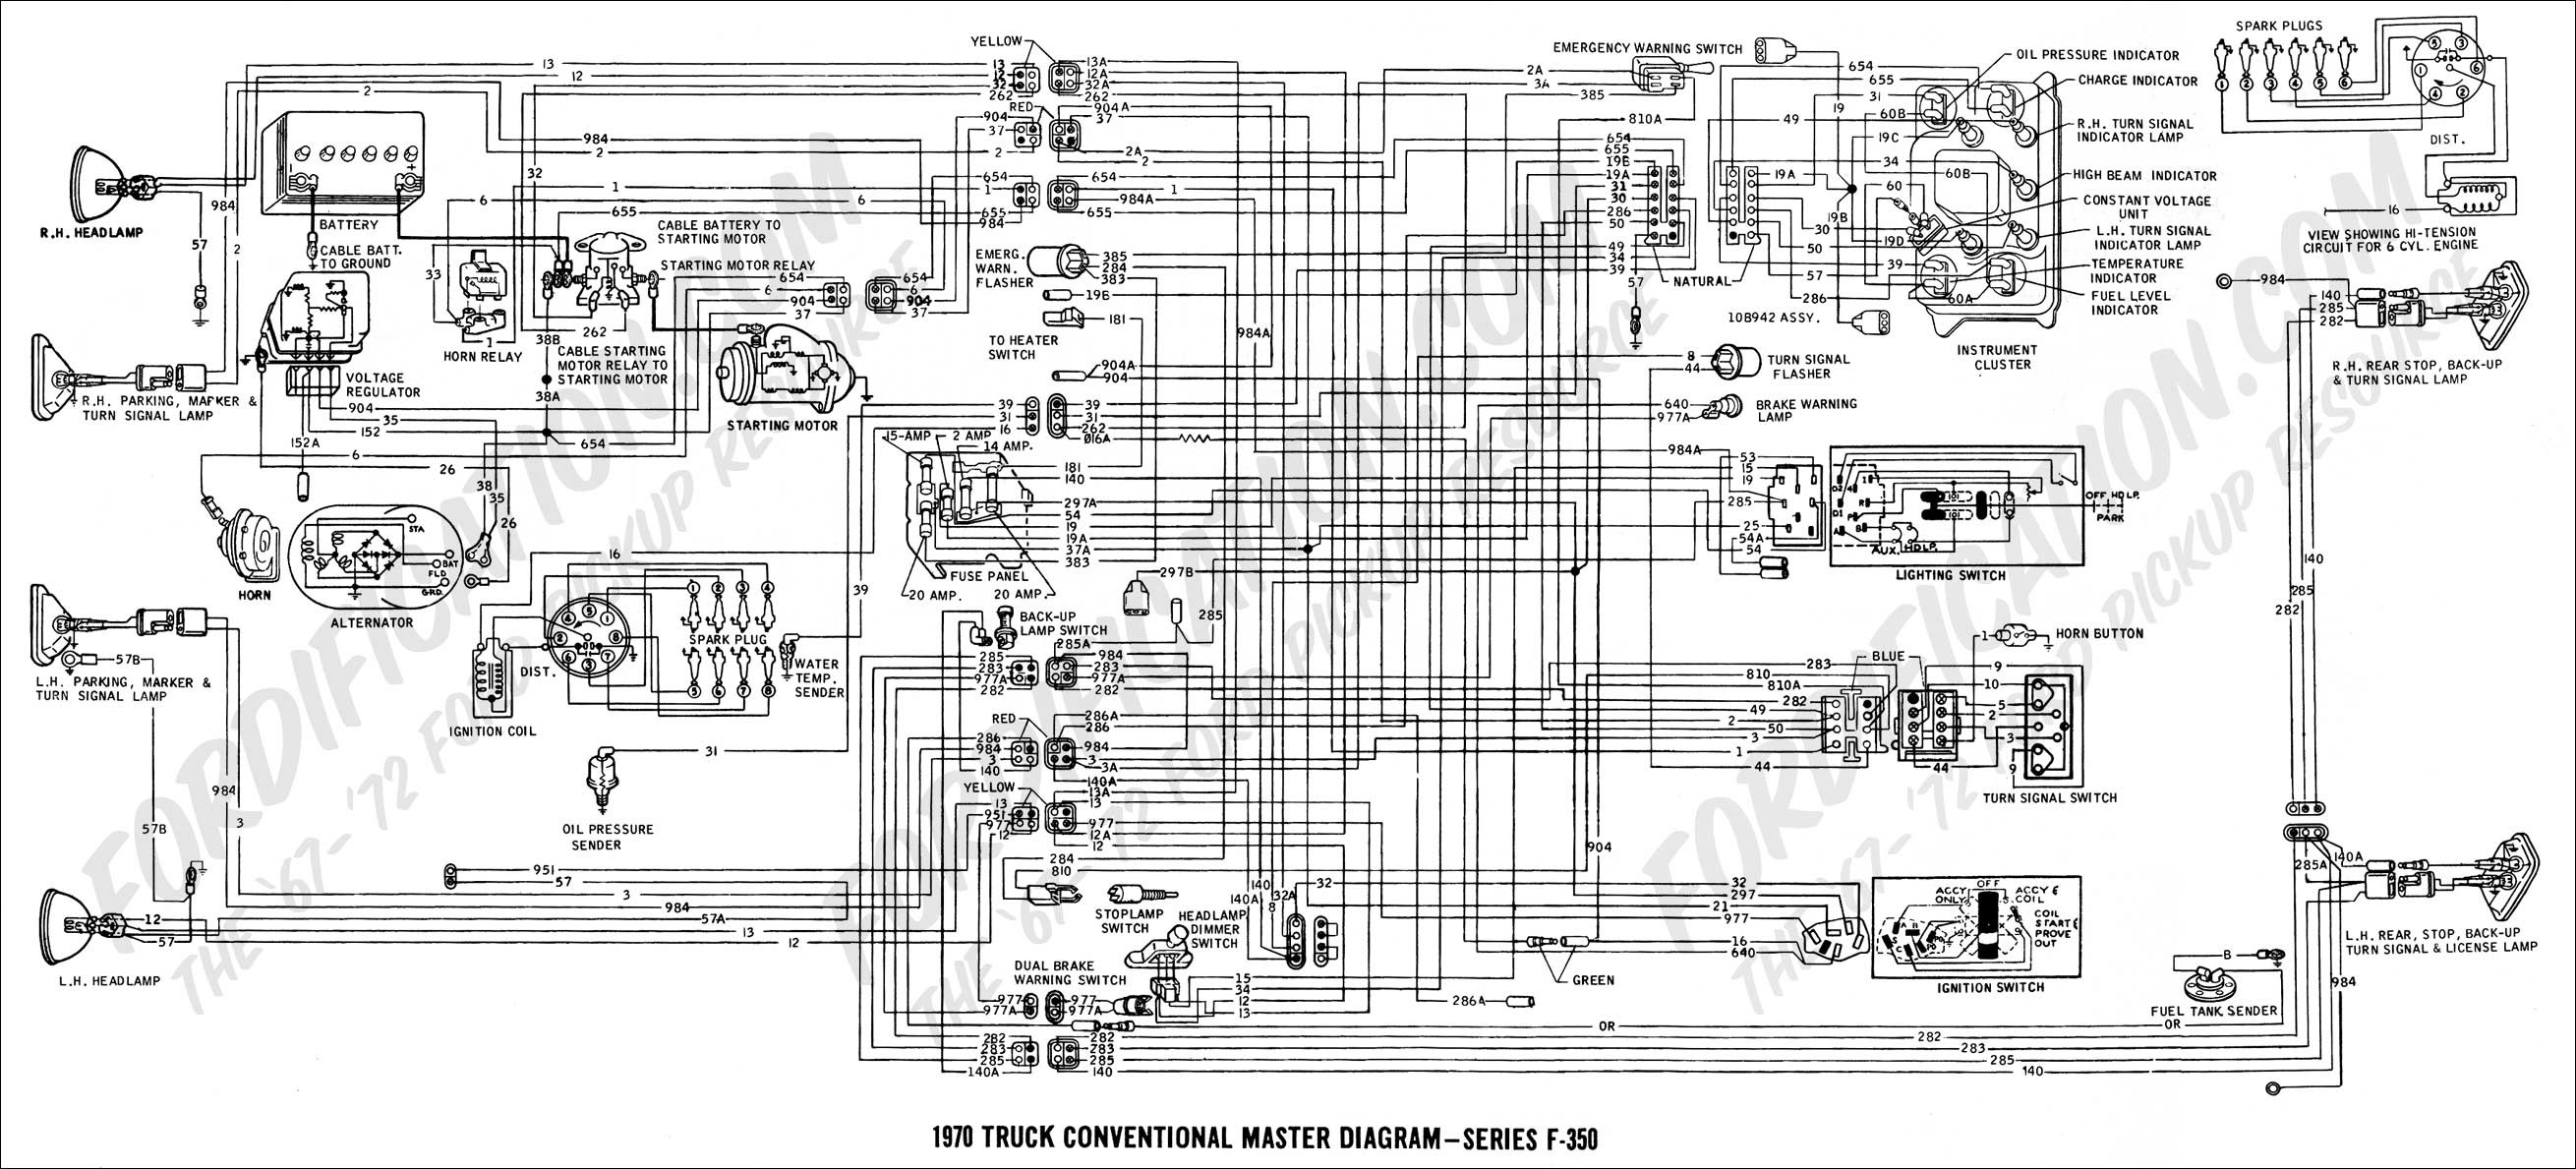 1983 toyota Pickup Wiring Diagram Diagram as Well ford F 350 Wiring Diagram In Addition ford Headlight Of 1983 toyota Pickup Wiring Diagram